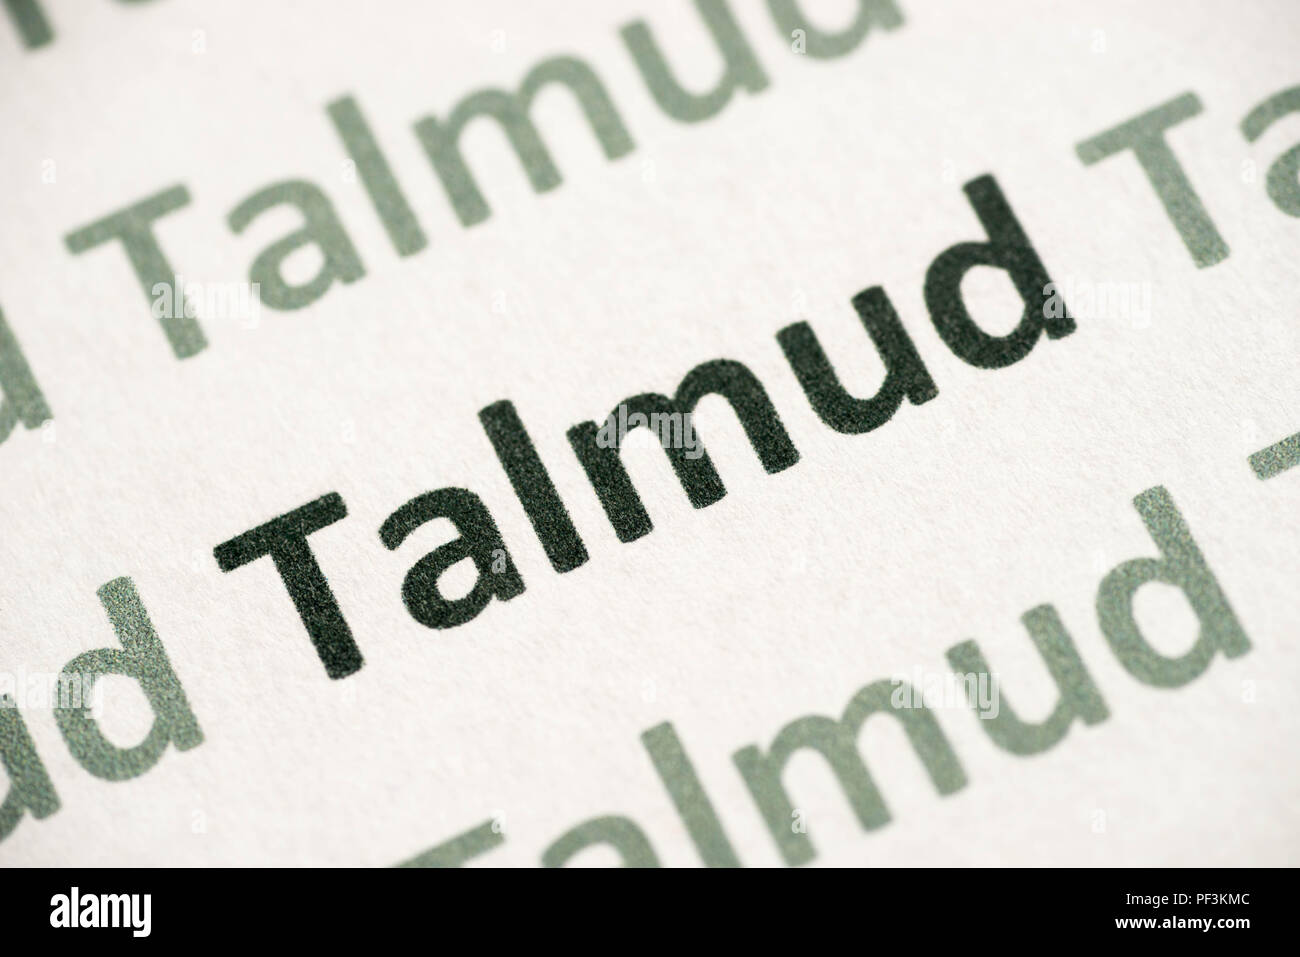 word Talmud printed on white paper macro - Stock Image